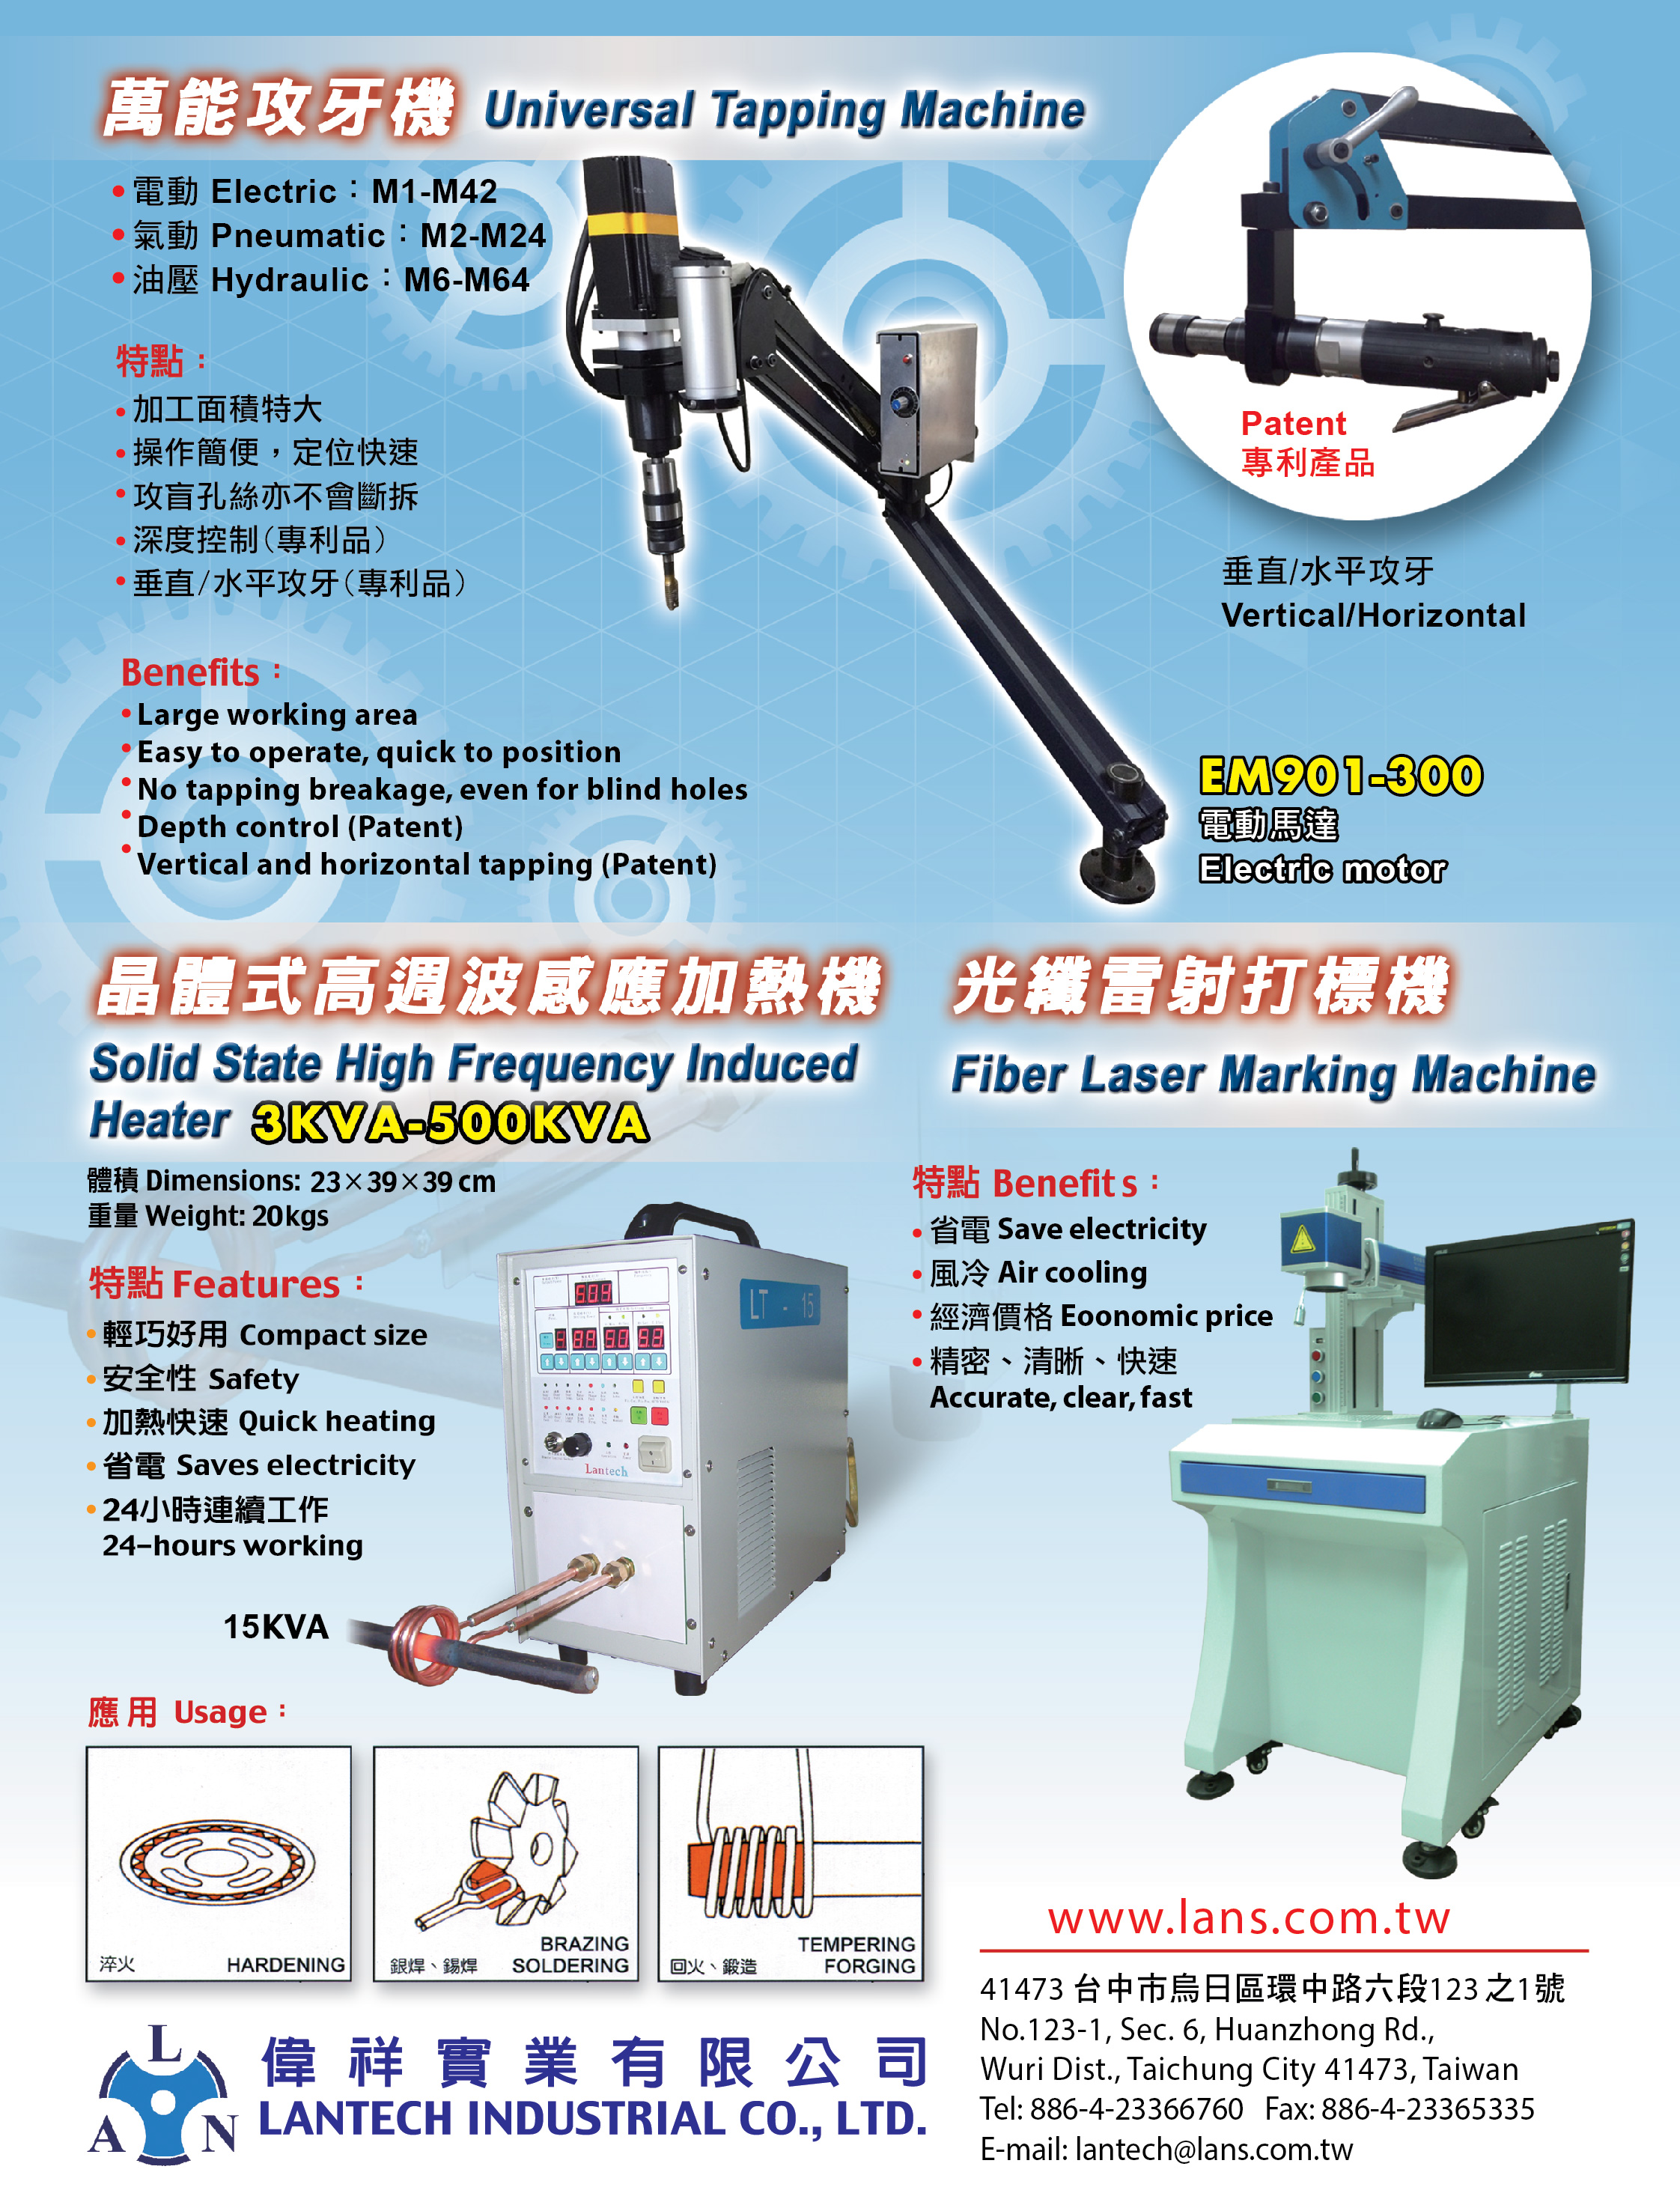 LANTECH INDUSTRIAL CO., LTD.